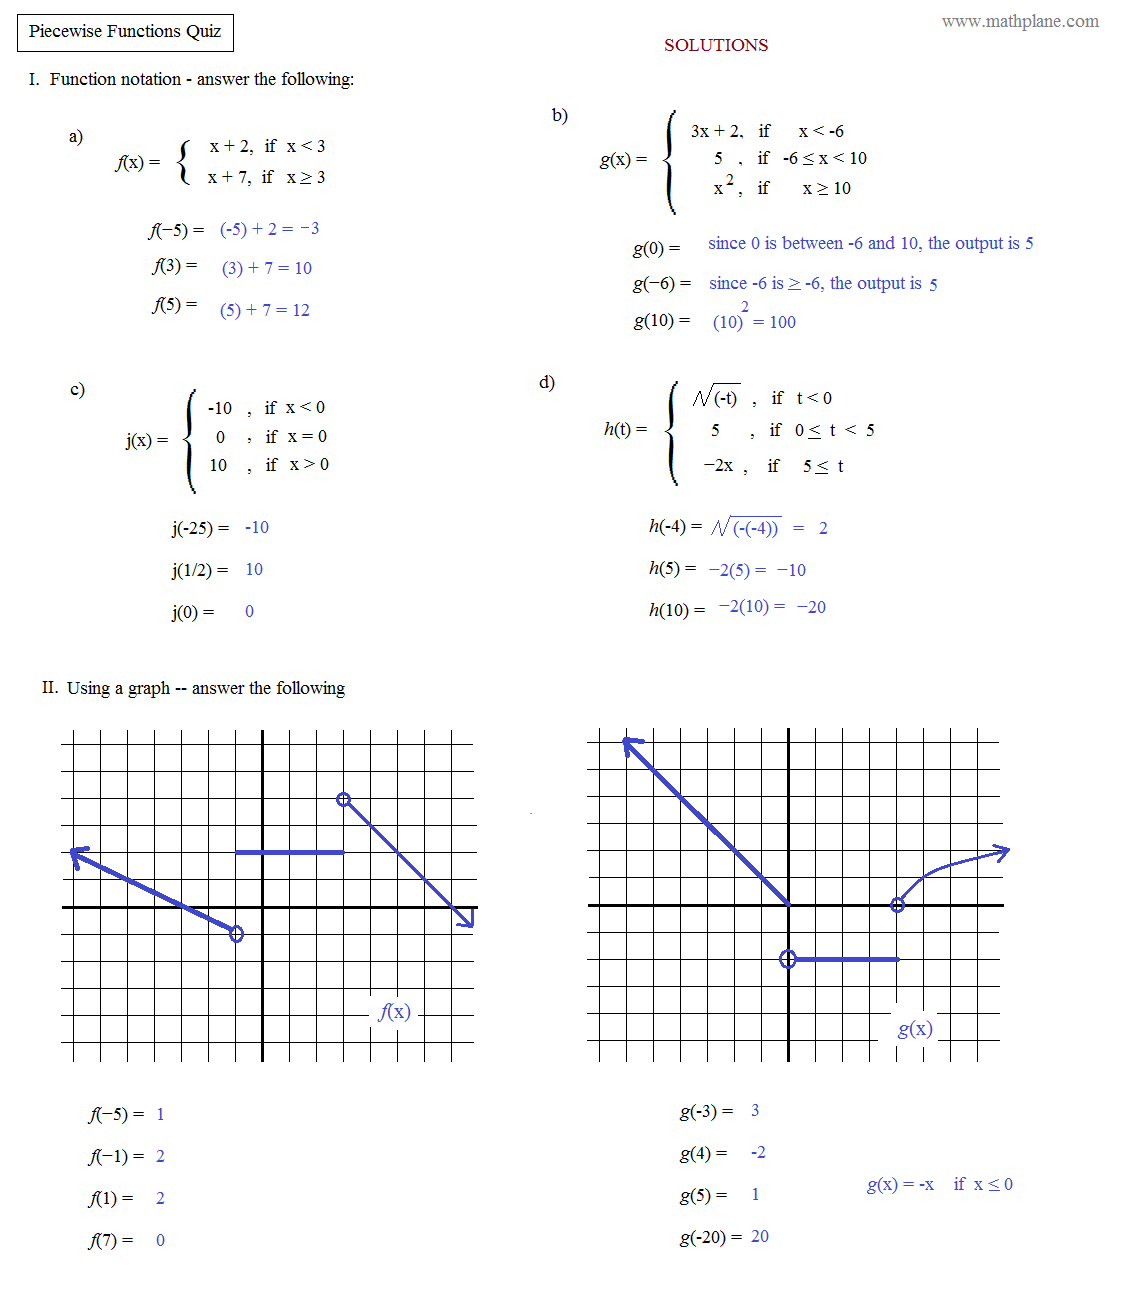 Piecewise Functions Evaluate Worksheet Answers Free